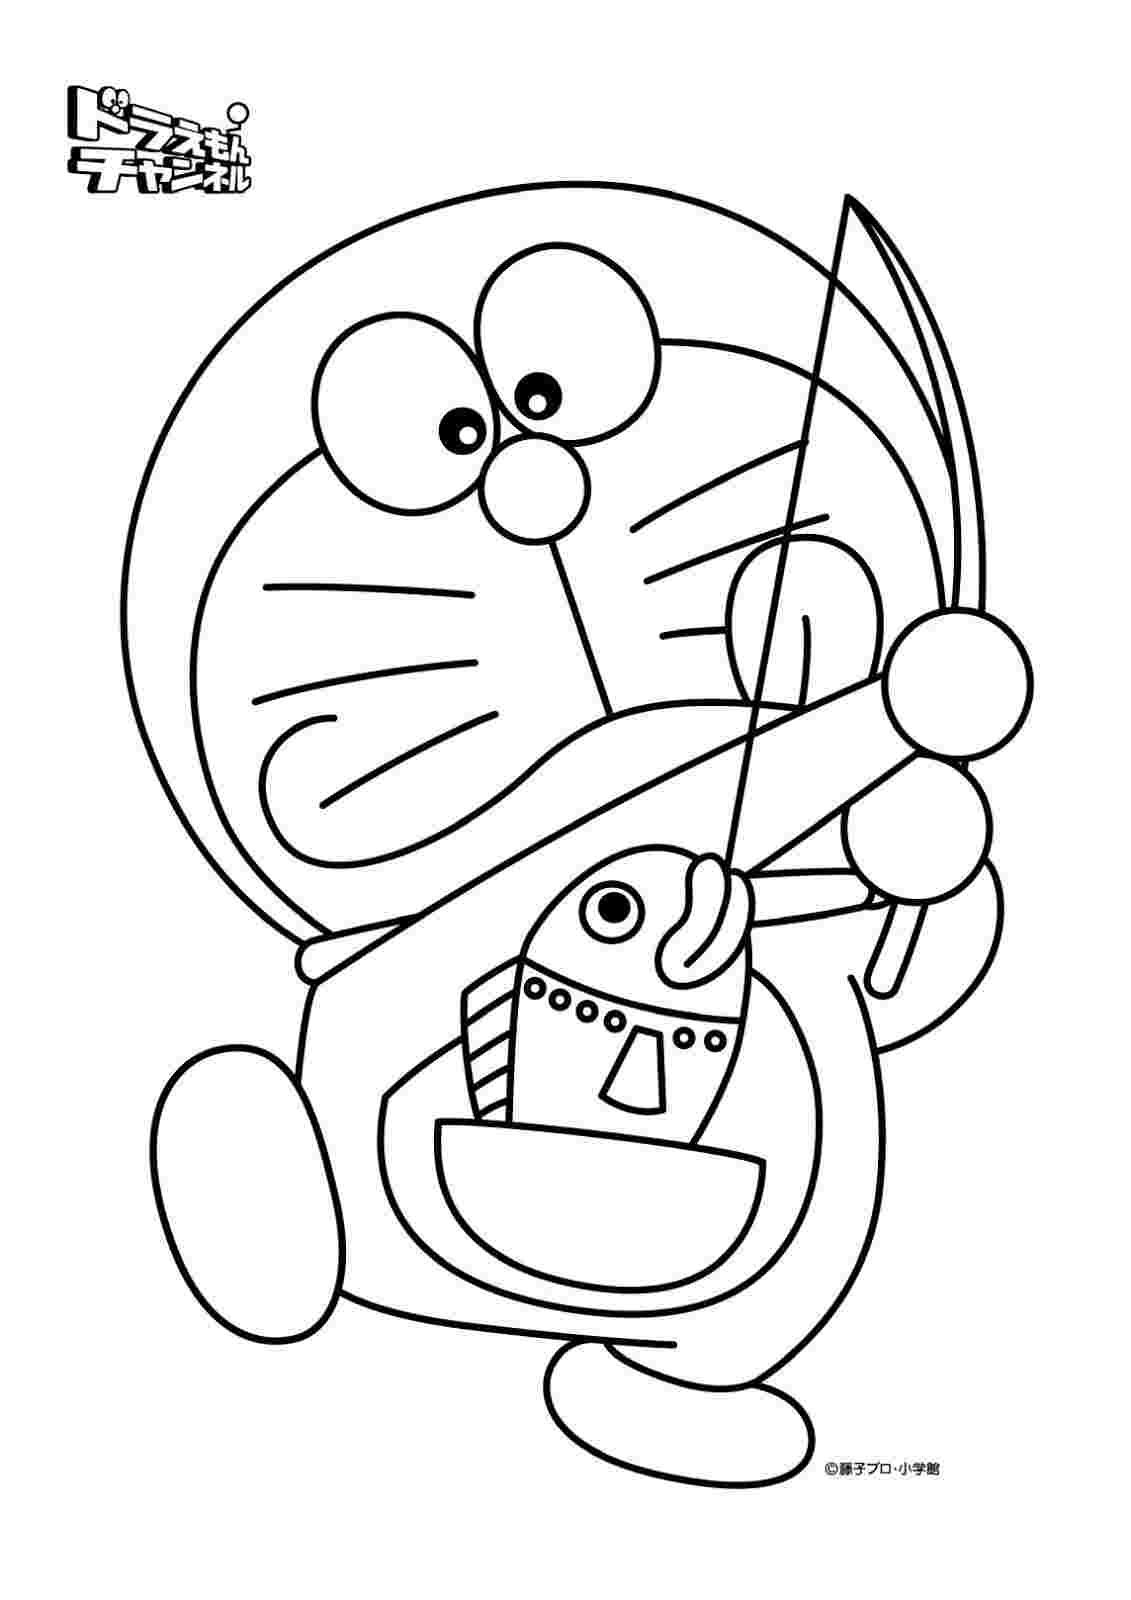 Coloring Festival Doraemon Coloring Pages Games For Kids More Than 100 Printable Coloring Doraemoncoloring Doraemoncoloringbook Doraemoncolo En 2020